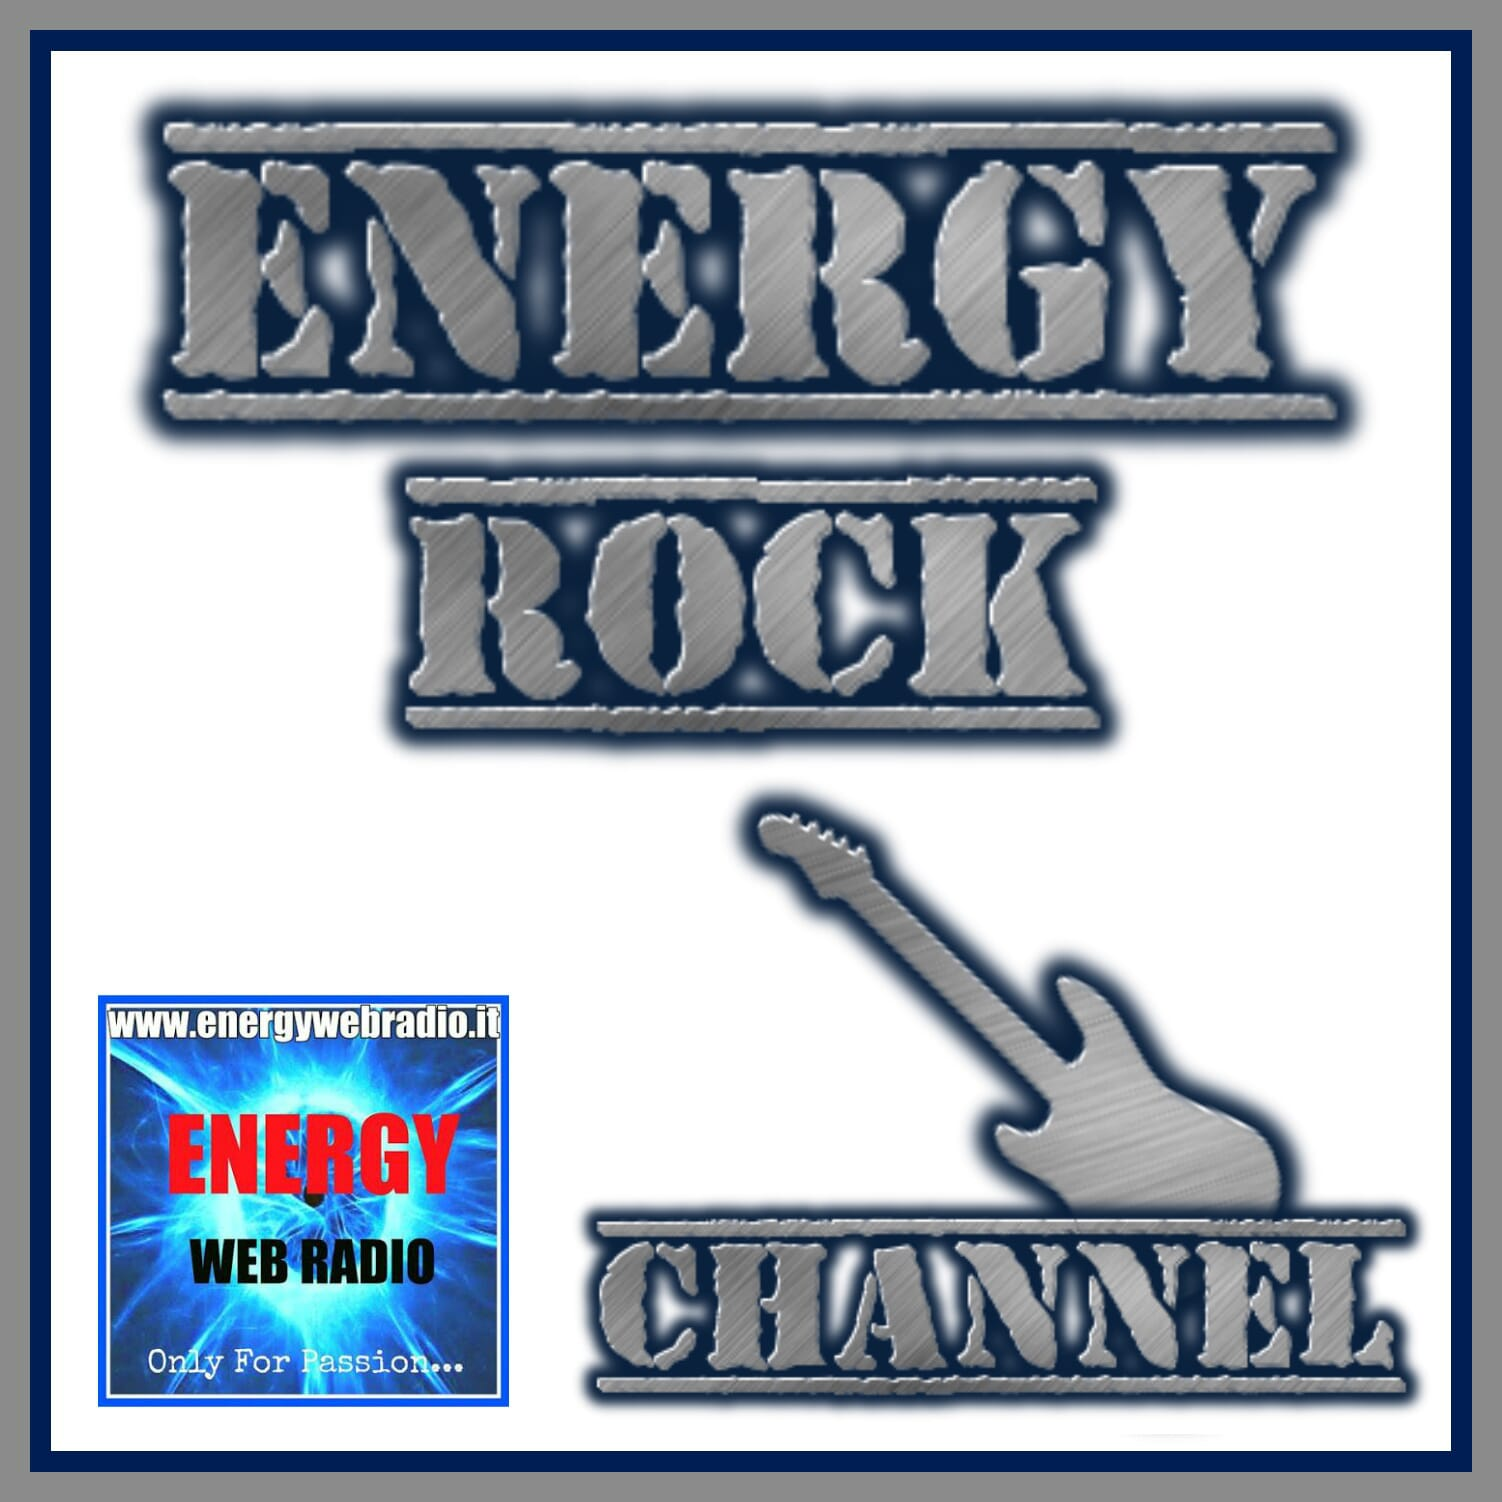 Ecouter Energy Rock Channel